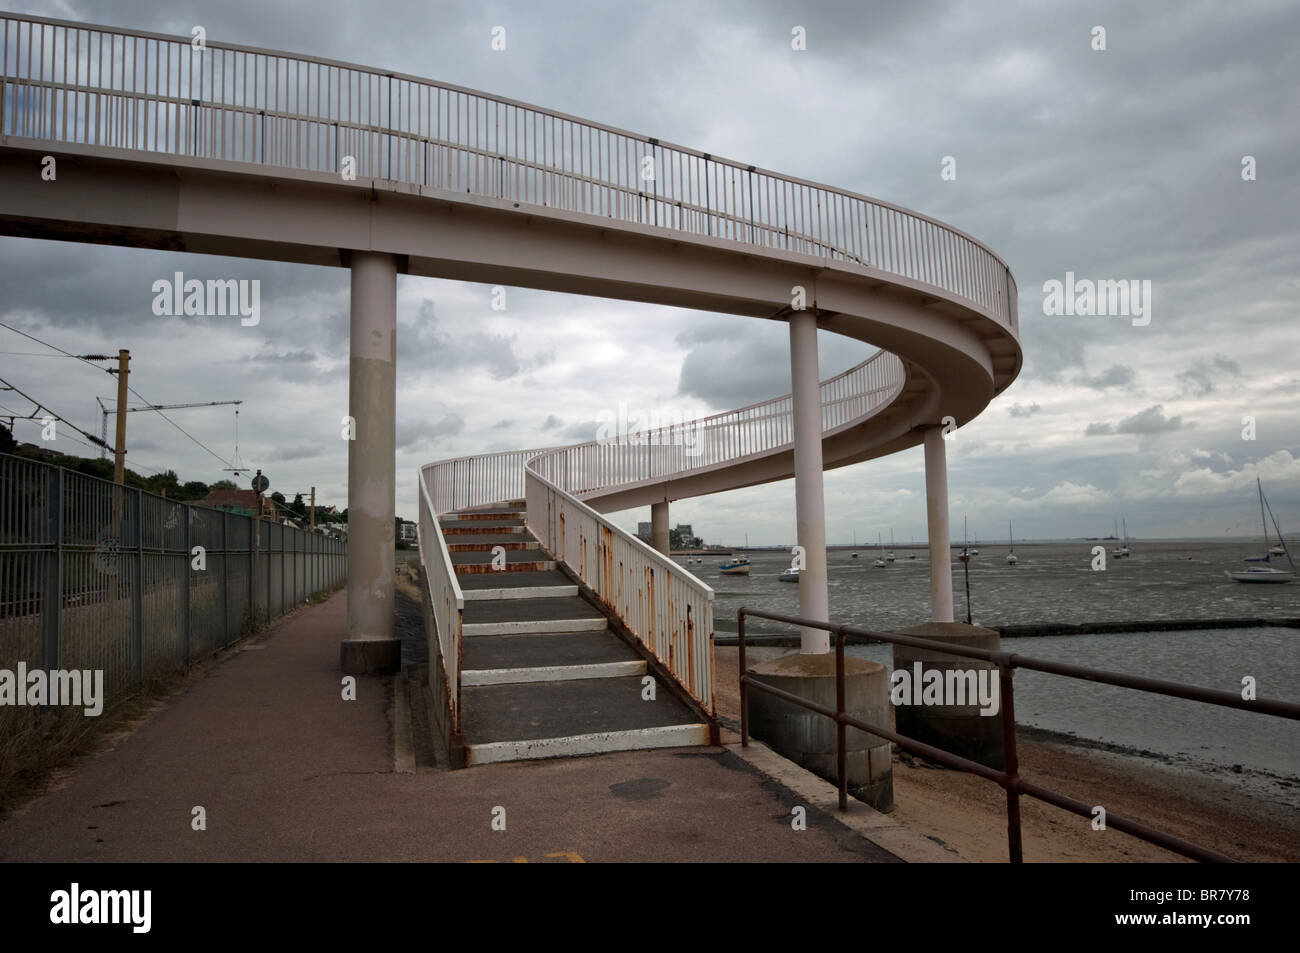 Curved ramp to distressed pedestrian bridge over railway track by the coast Stock Photo